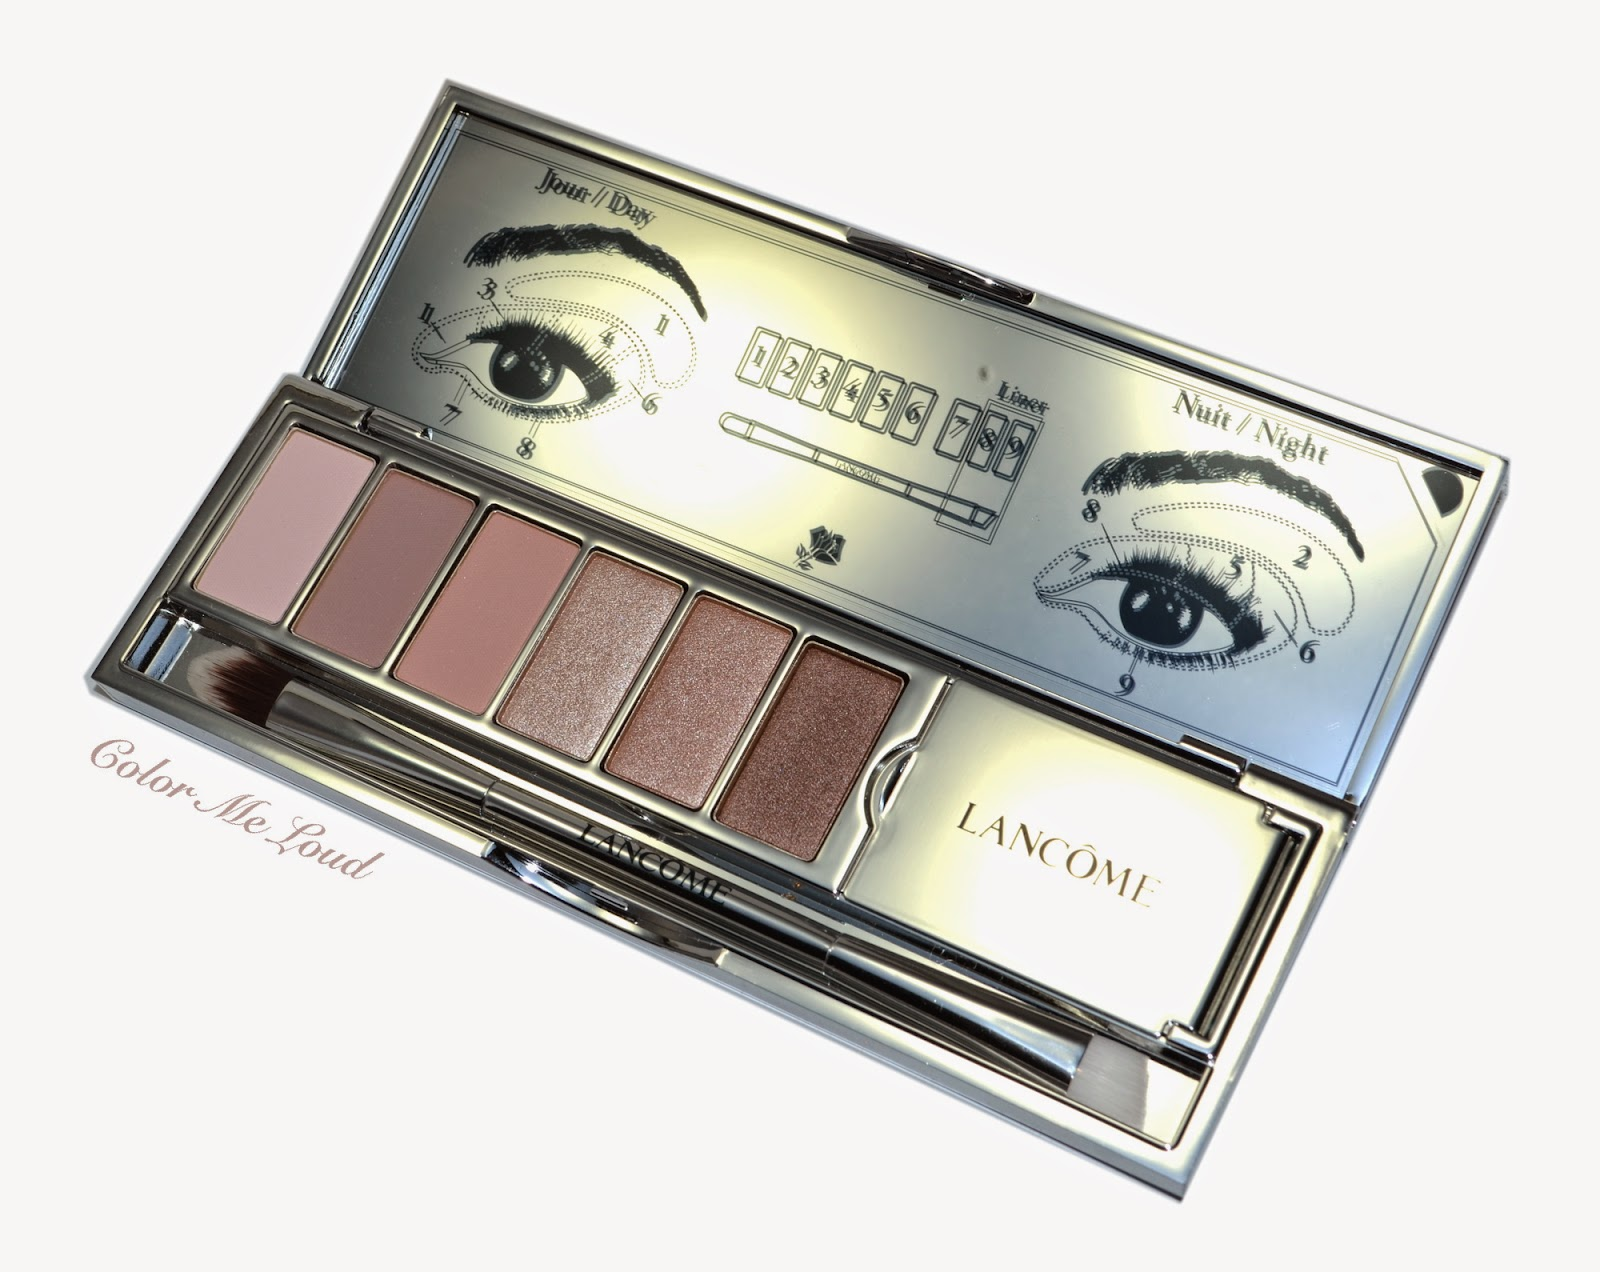 Lancôme My Paris Eye Shadow Palette Compact